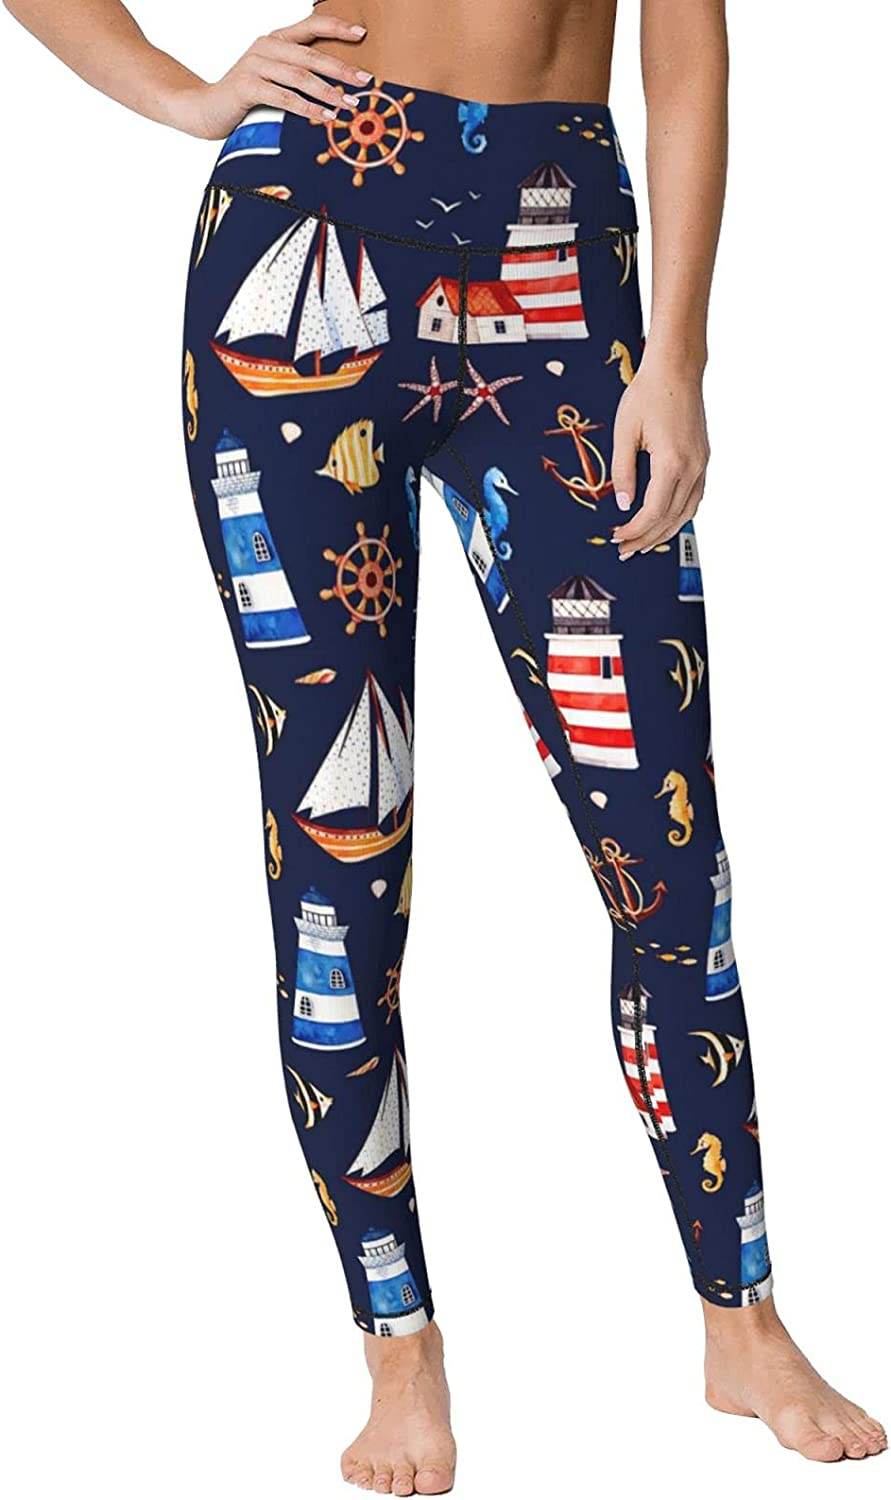 ONE TO PROMISE High Waisted Yoga Printed Pants List price Women's Opening large release sale Leggings